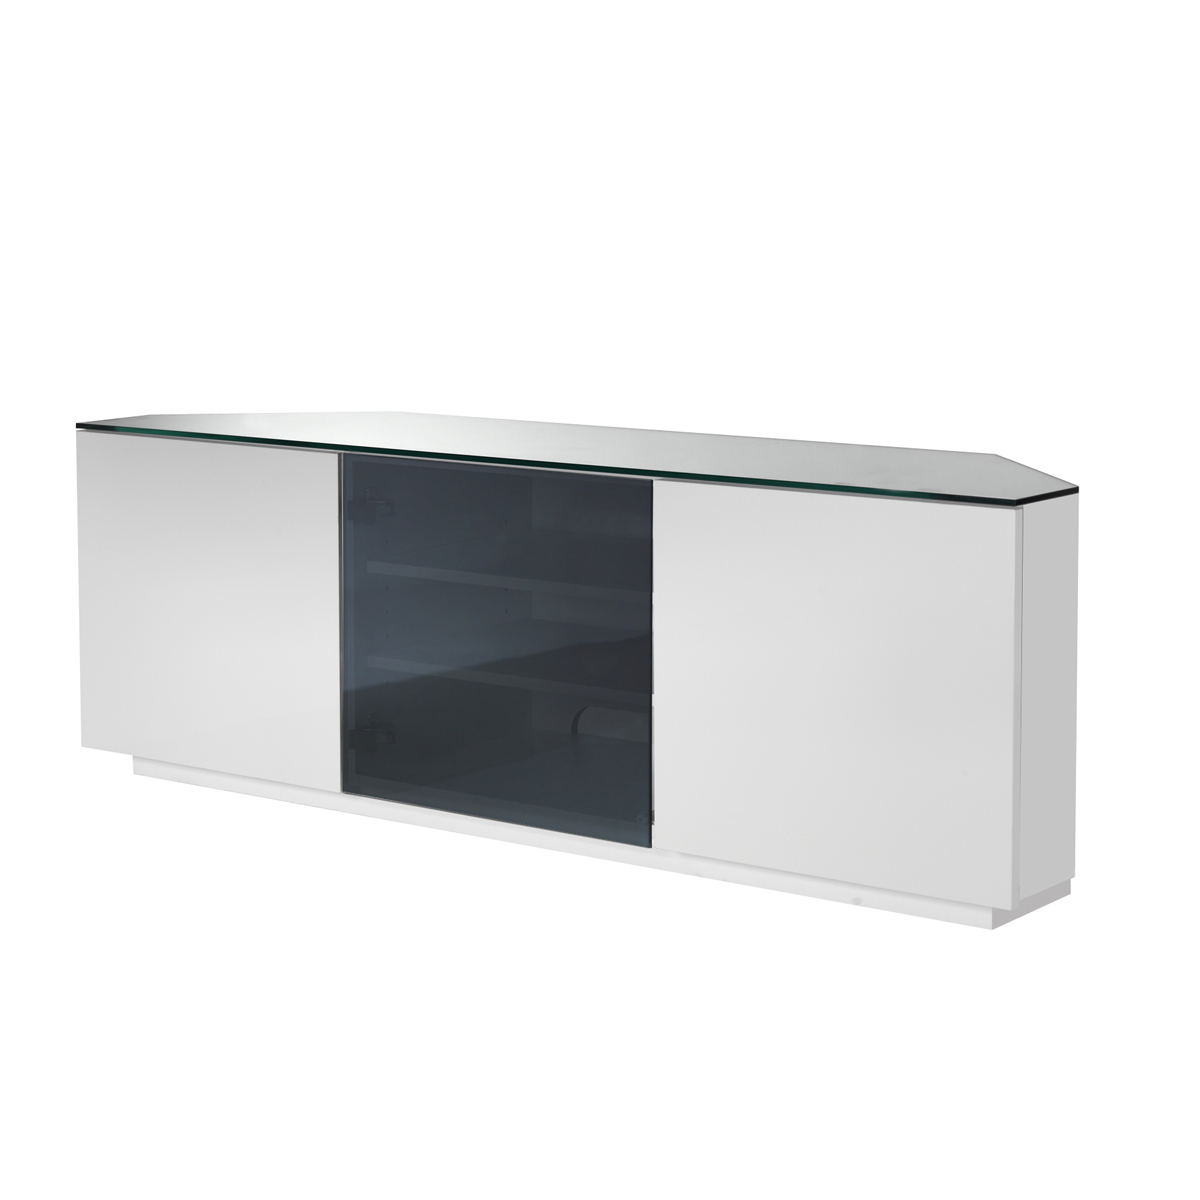 Black High Gloss Corner Tv Unit Pertaining To Latest Ukcf Milan White Gloss & Black Glass Corner Tv Stand 150Cm (View 7 of 20)